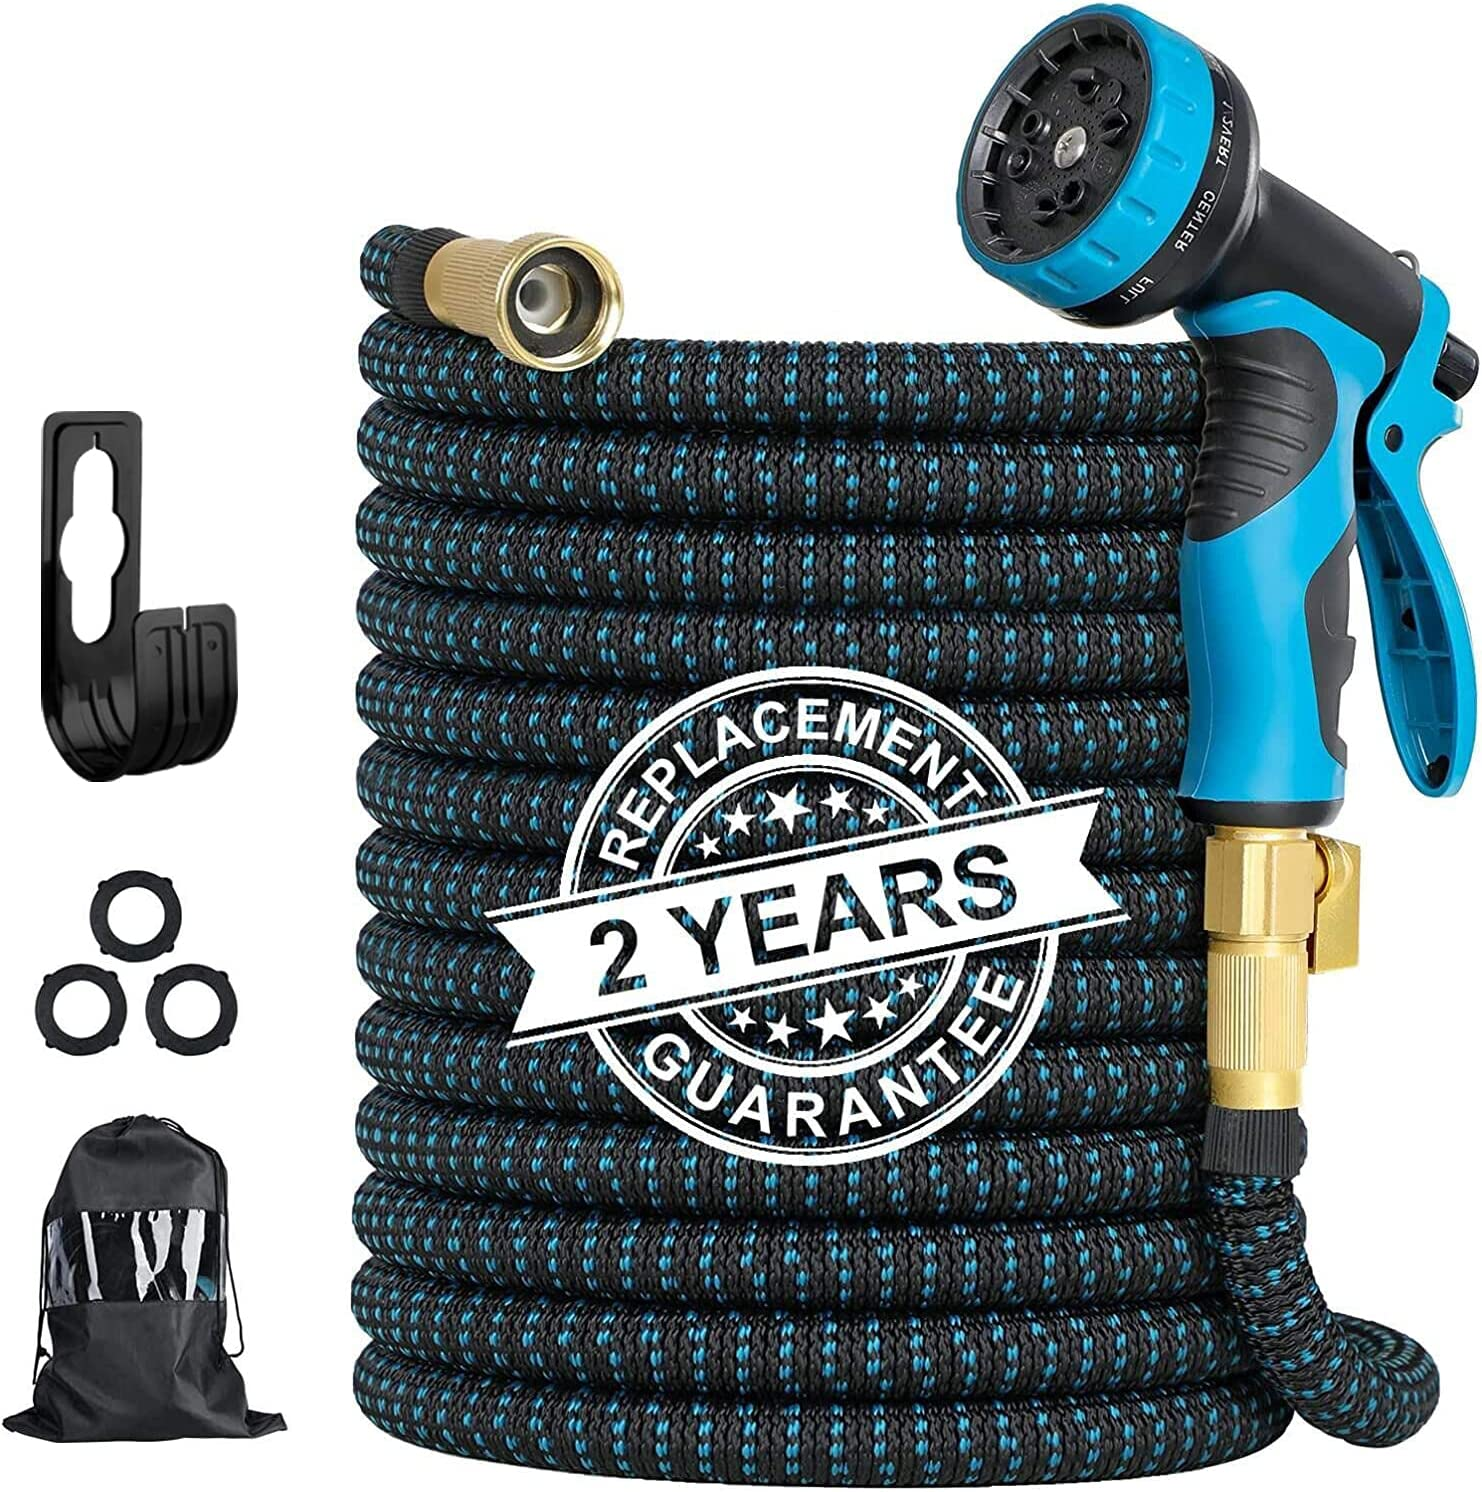 No Kink Garden Hose   50 ft Garden Hose Expandable - 3750D Heavy Duty Flexible Water Hose with 9 Function Nozzle   3/4 Inch Solid Brass Fittings & 4-Layer Latex Core